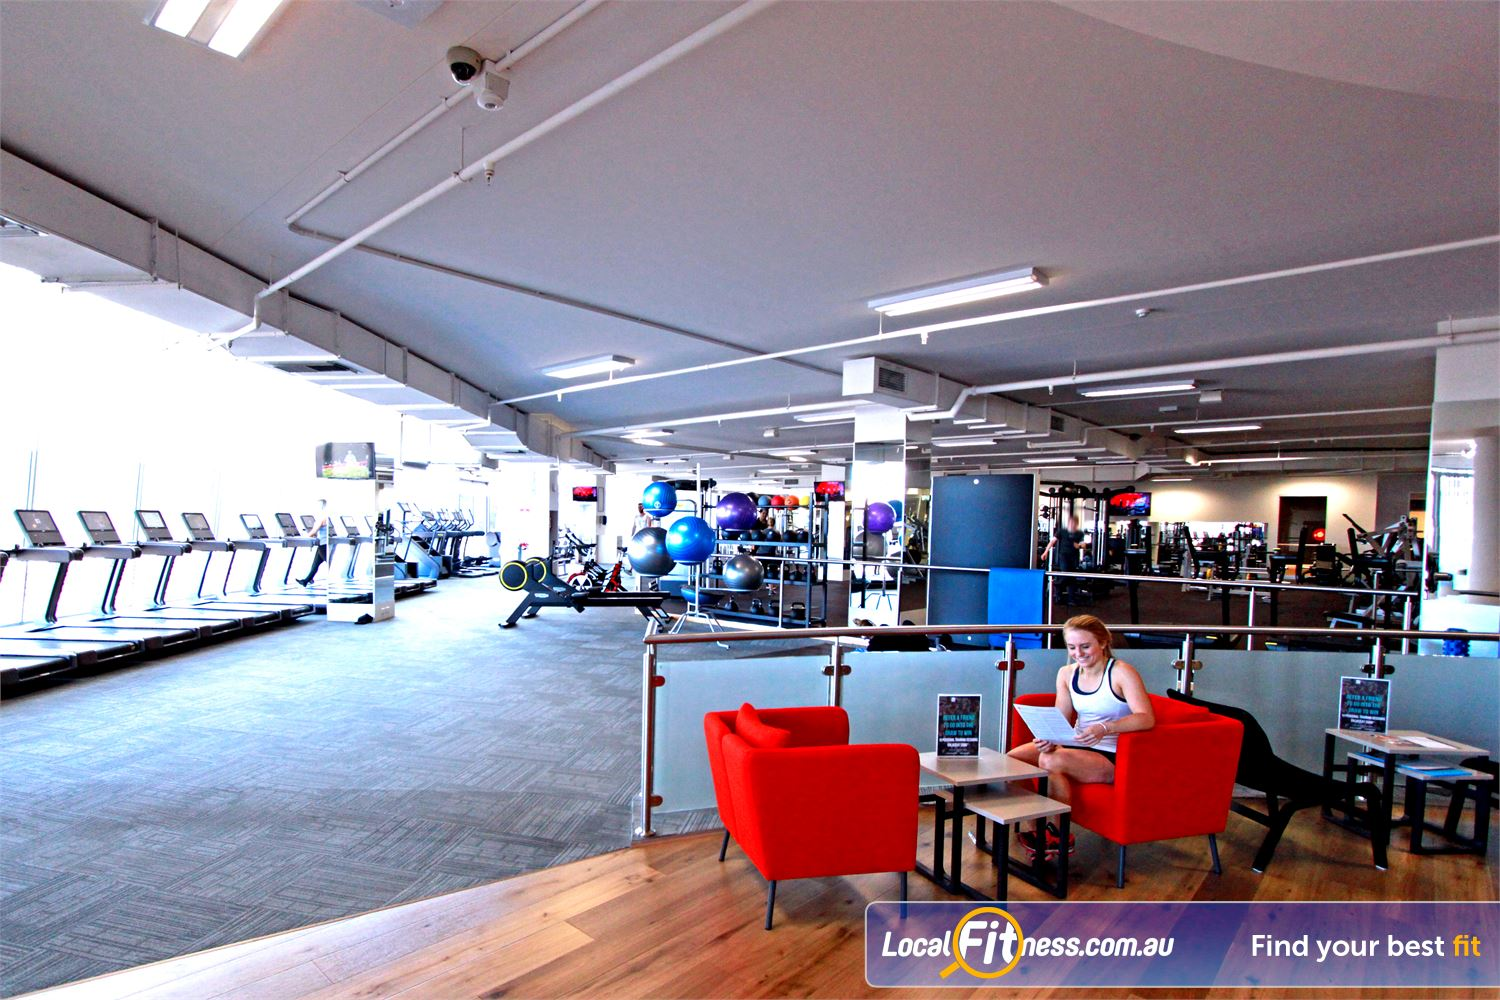 South Pacific Health Clubs Near Heatherton Our members lounge is a great place to meet up after your workout.